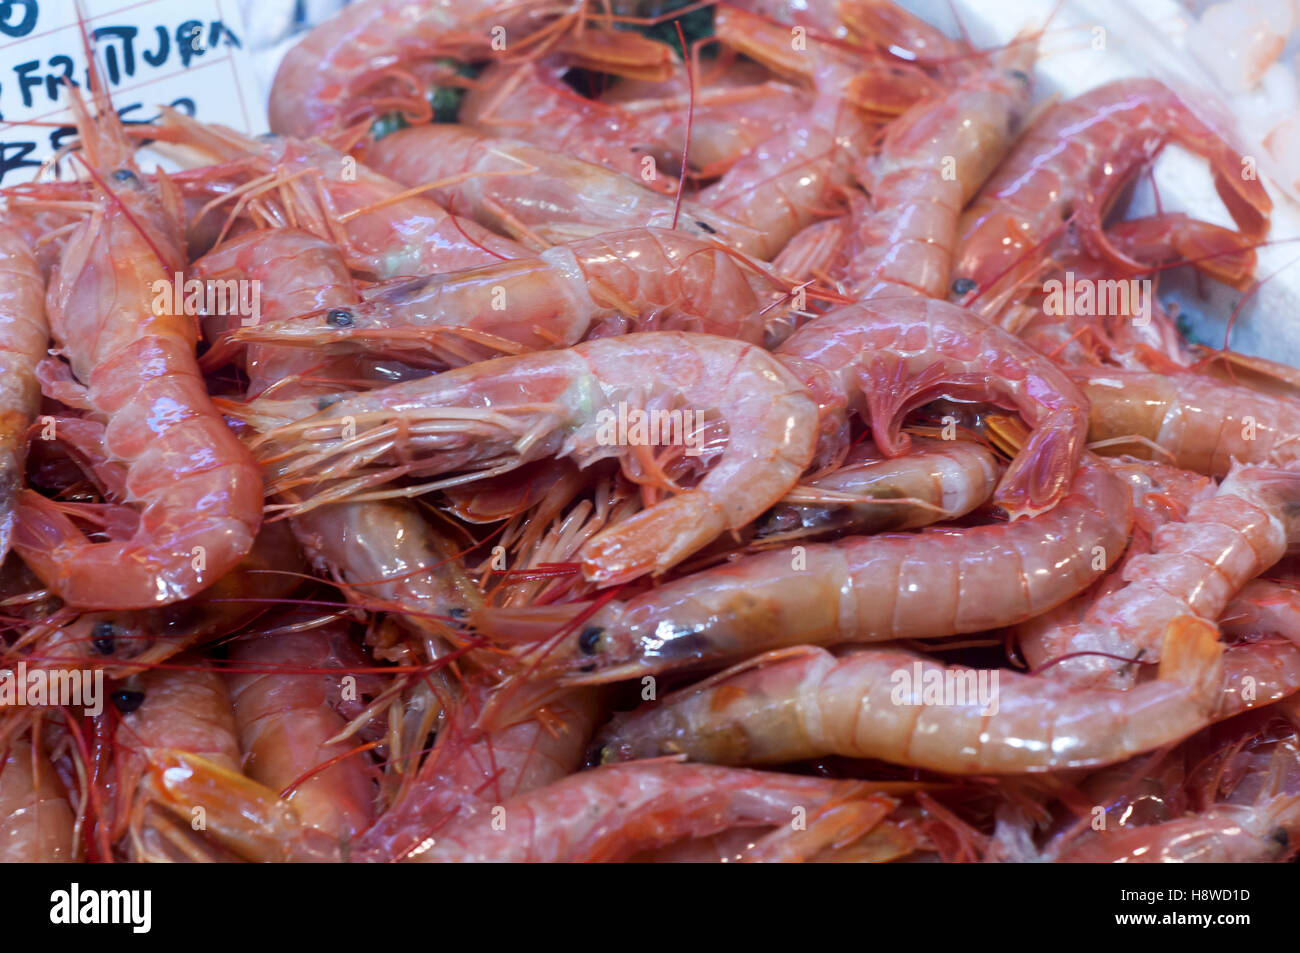 Close Up Of Fresh Whole Raw Shrimp Or Prawns On Display In Fish